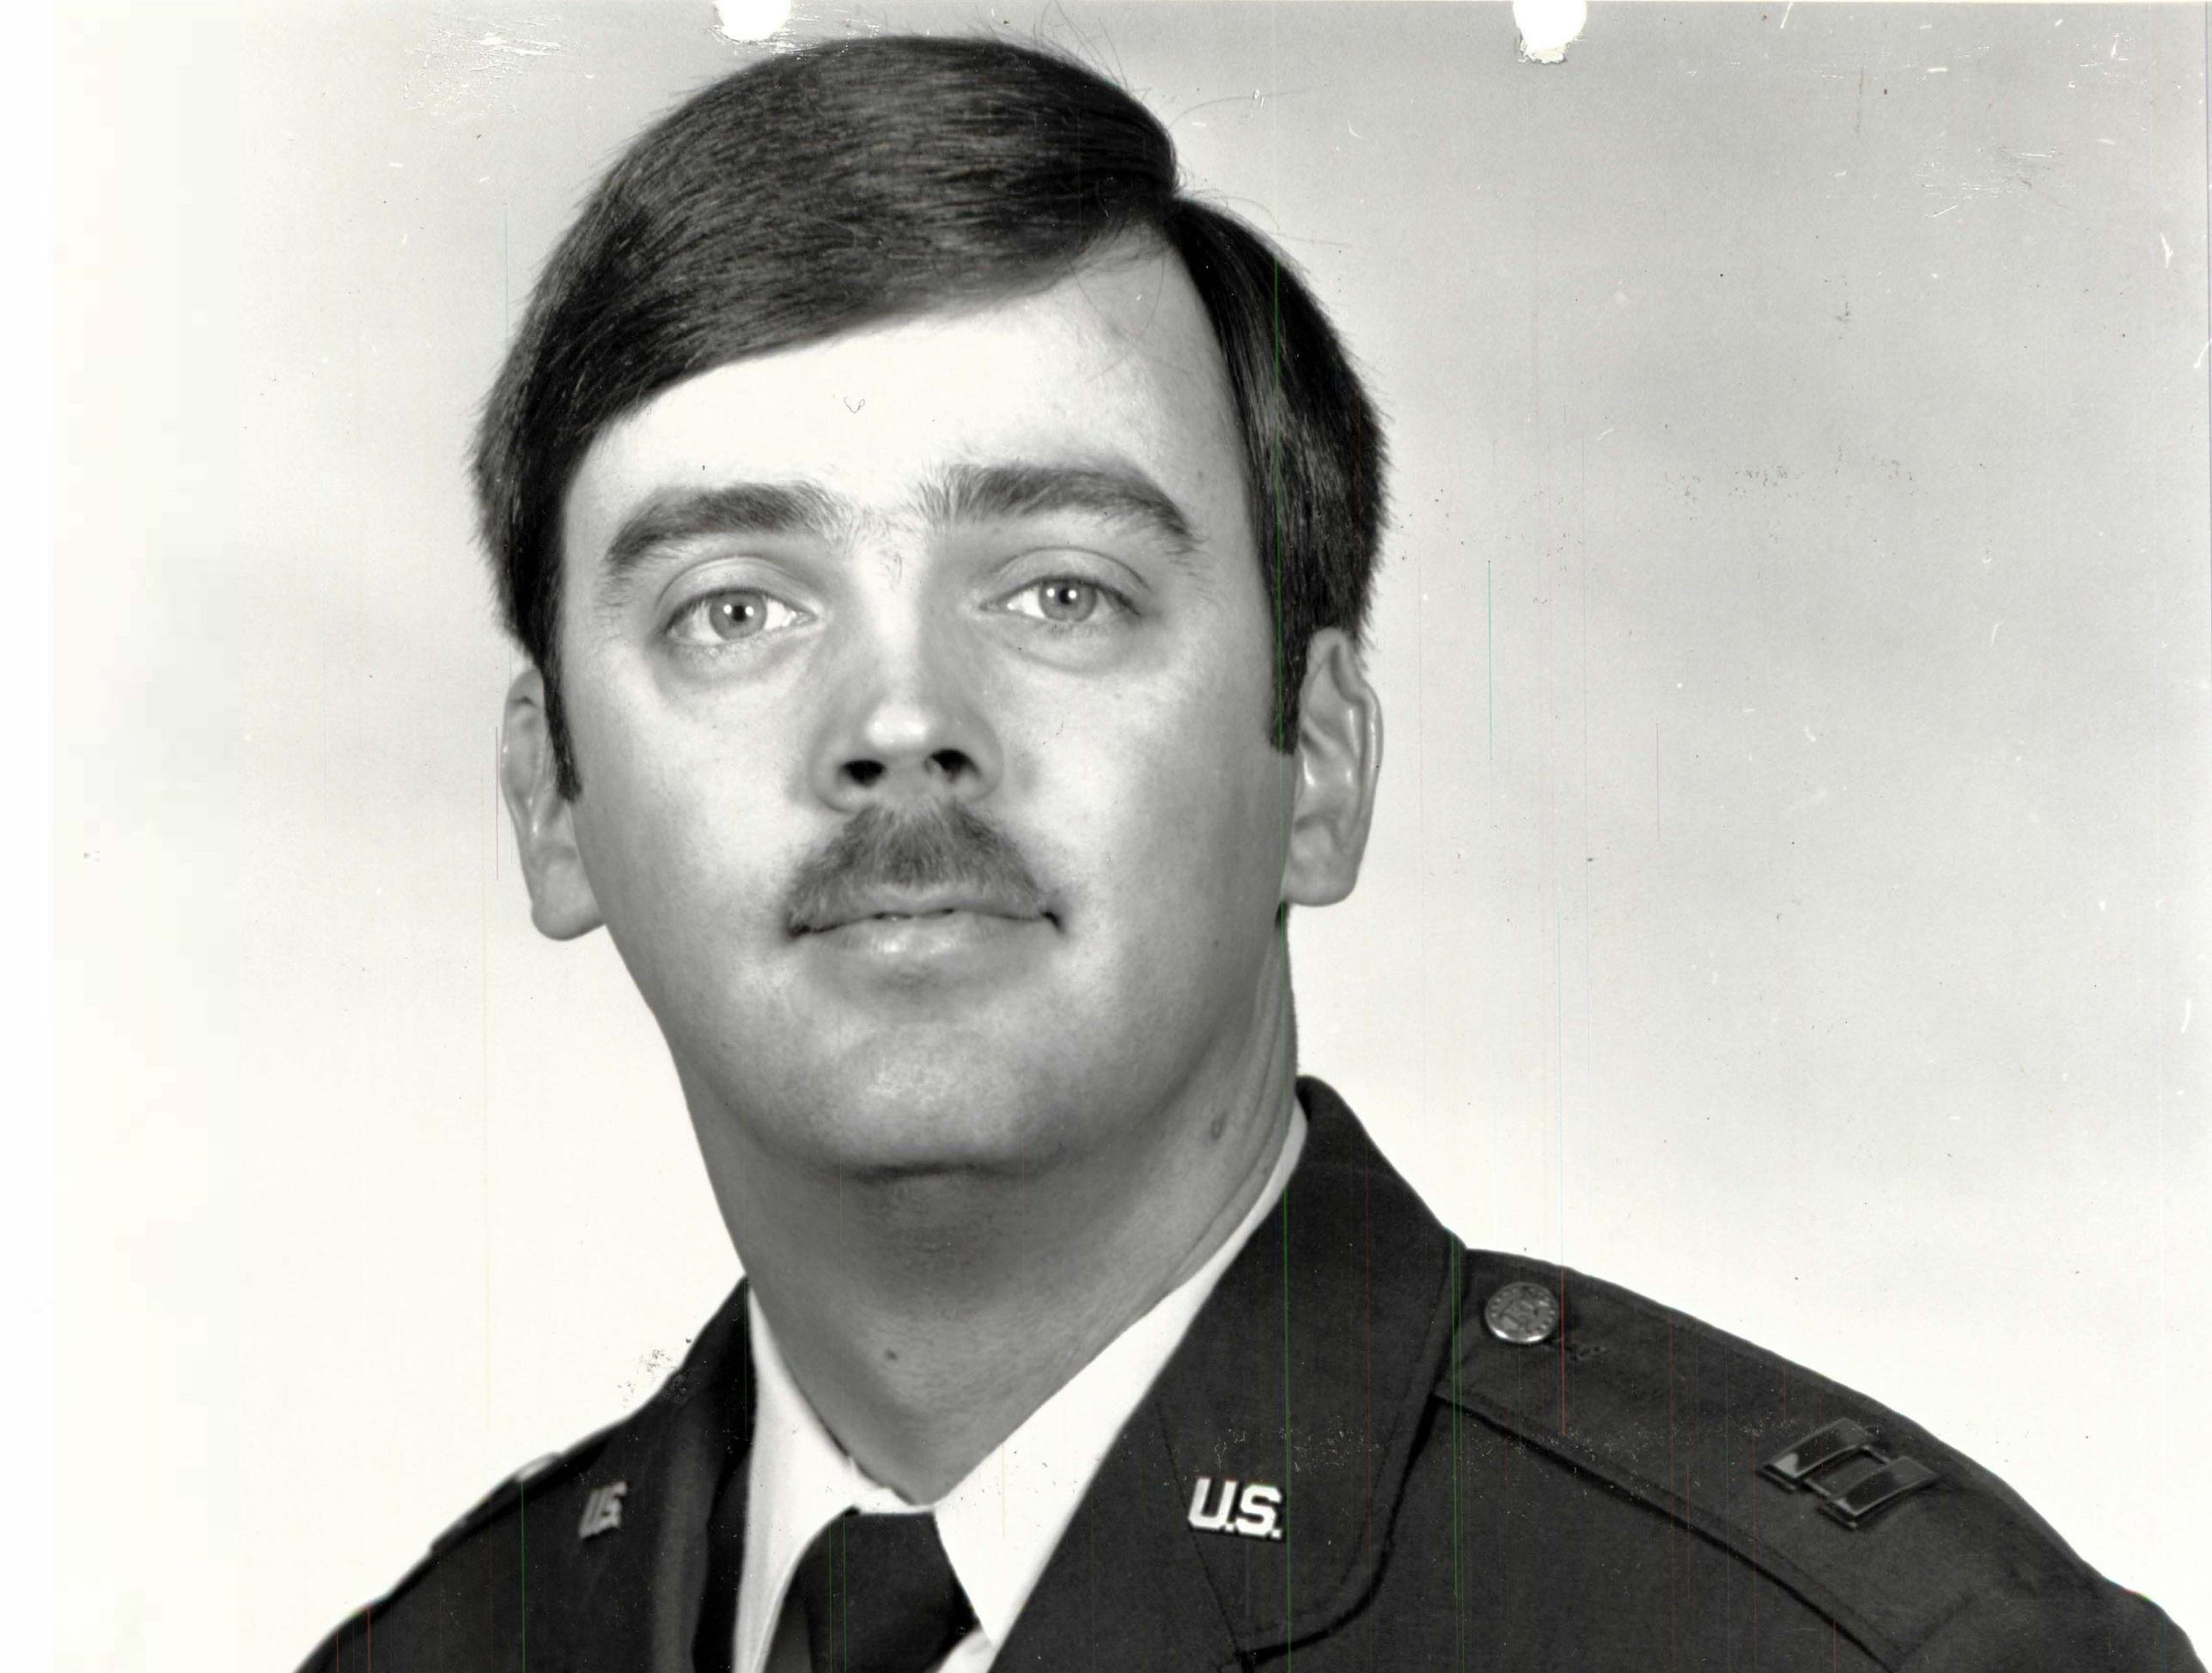 US Air Force officer missing for 35 years found living in California